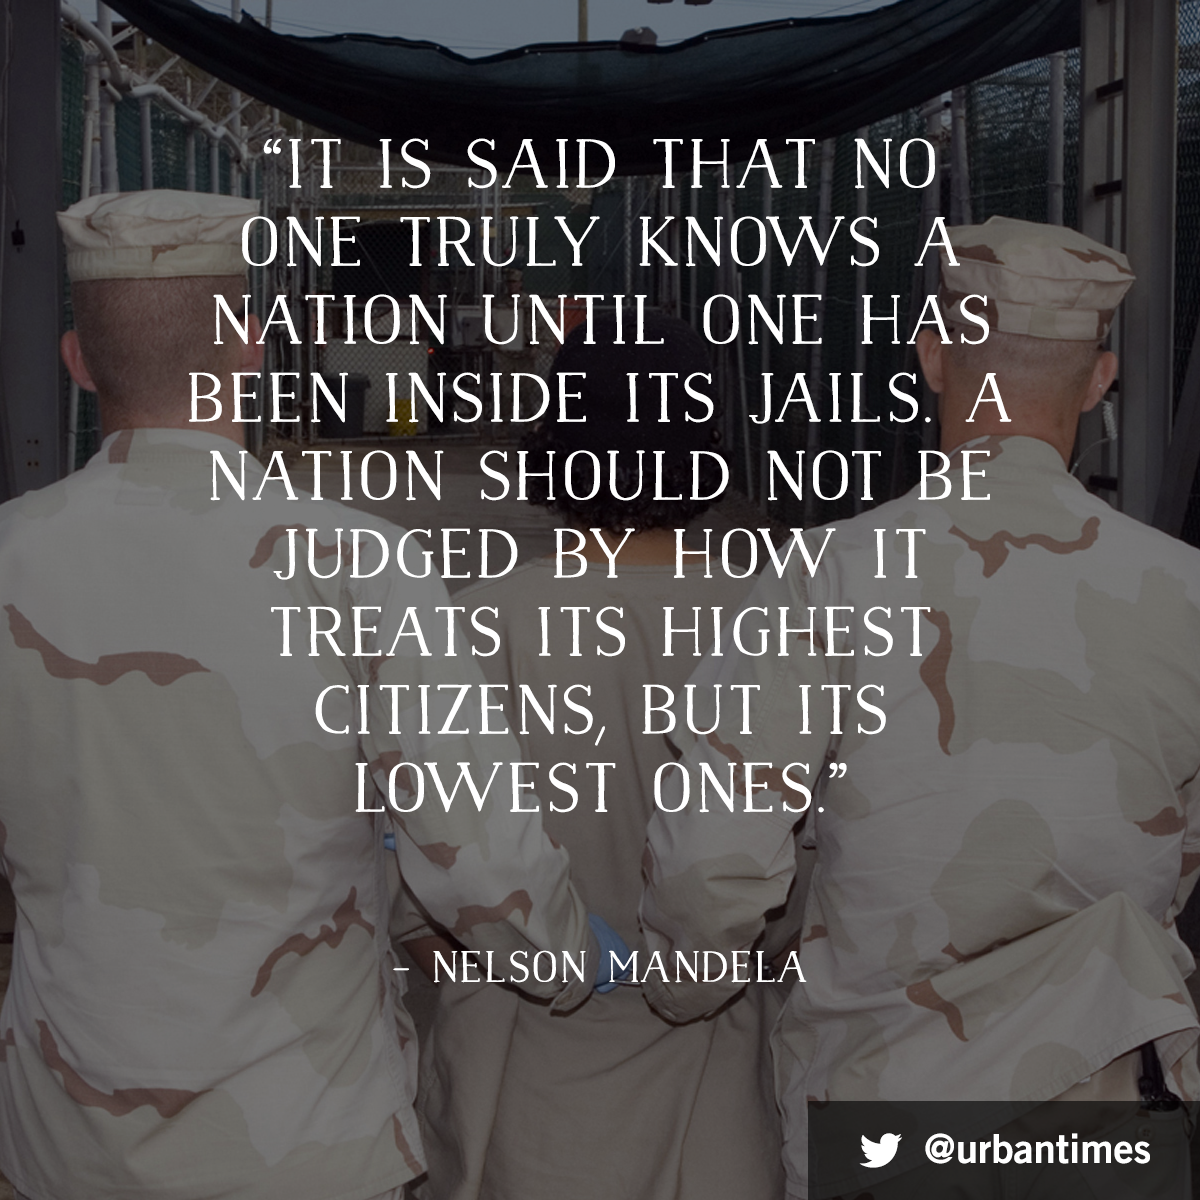 Pin By Julie Dickey On Inmate Advocacy Prison Reform And Justice Quotes By Famous People Justice Quotes Prison Quotes